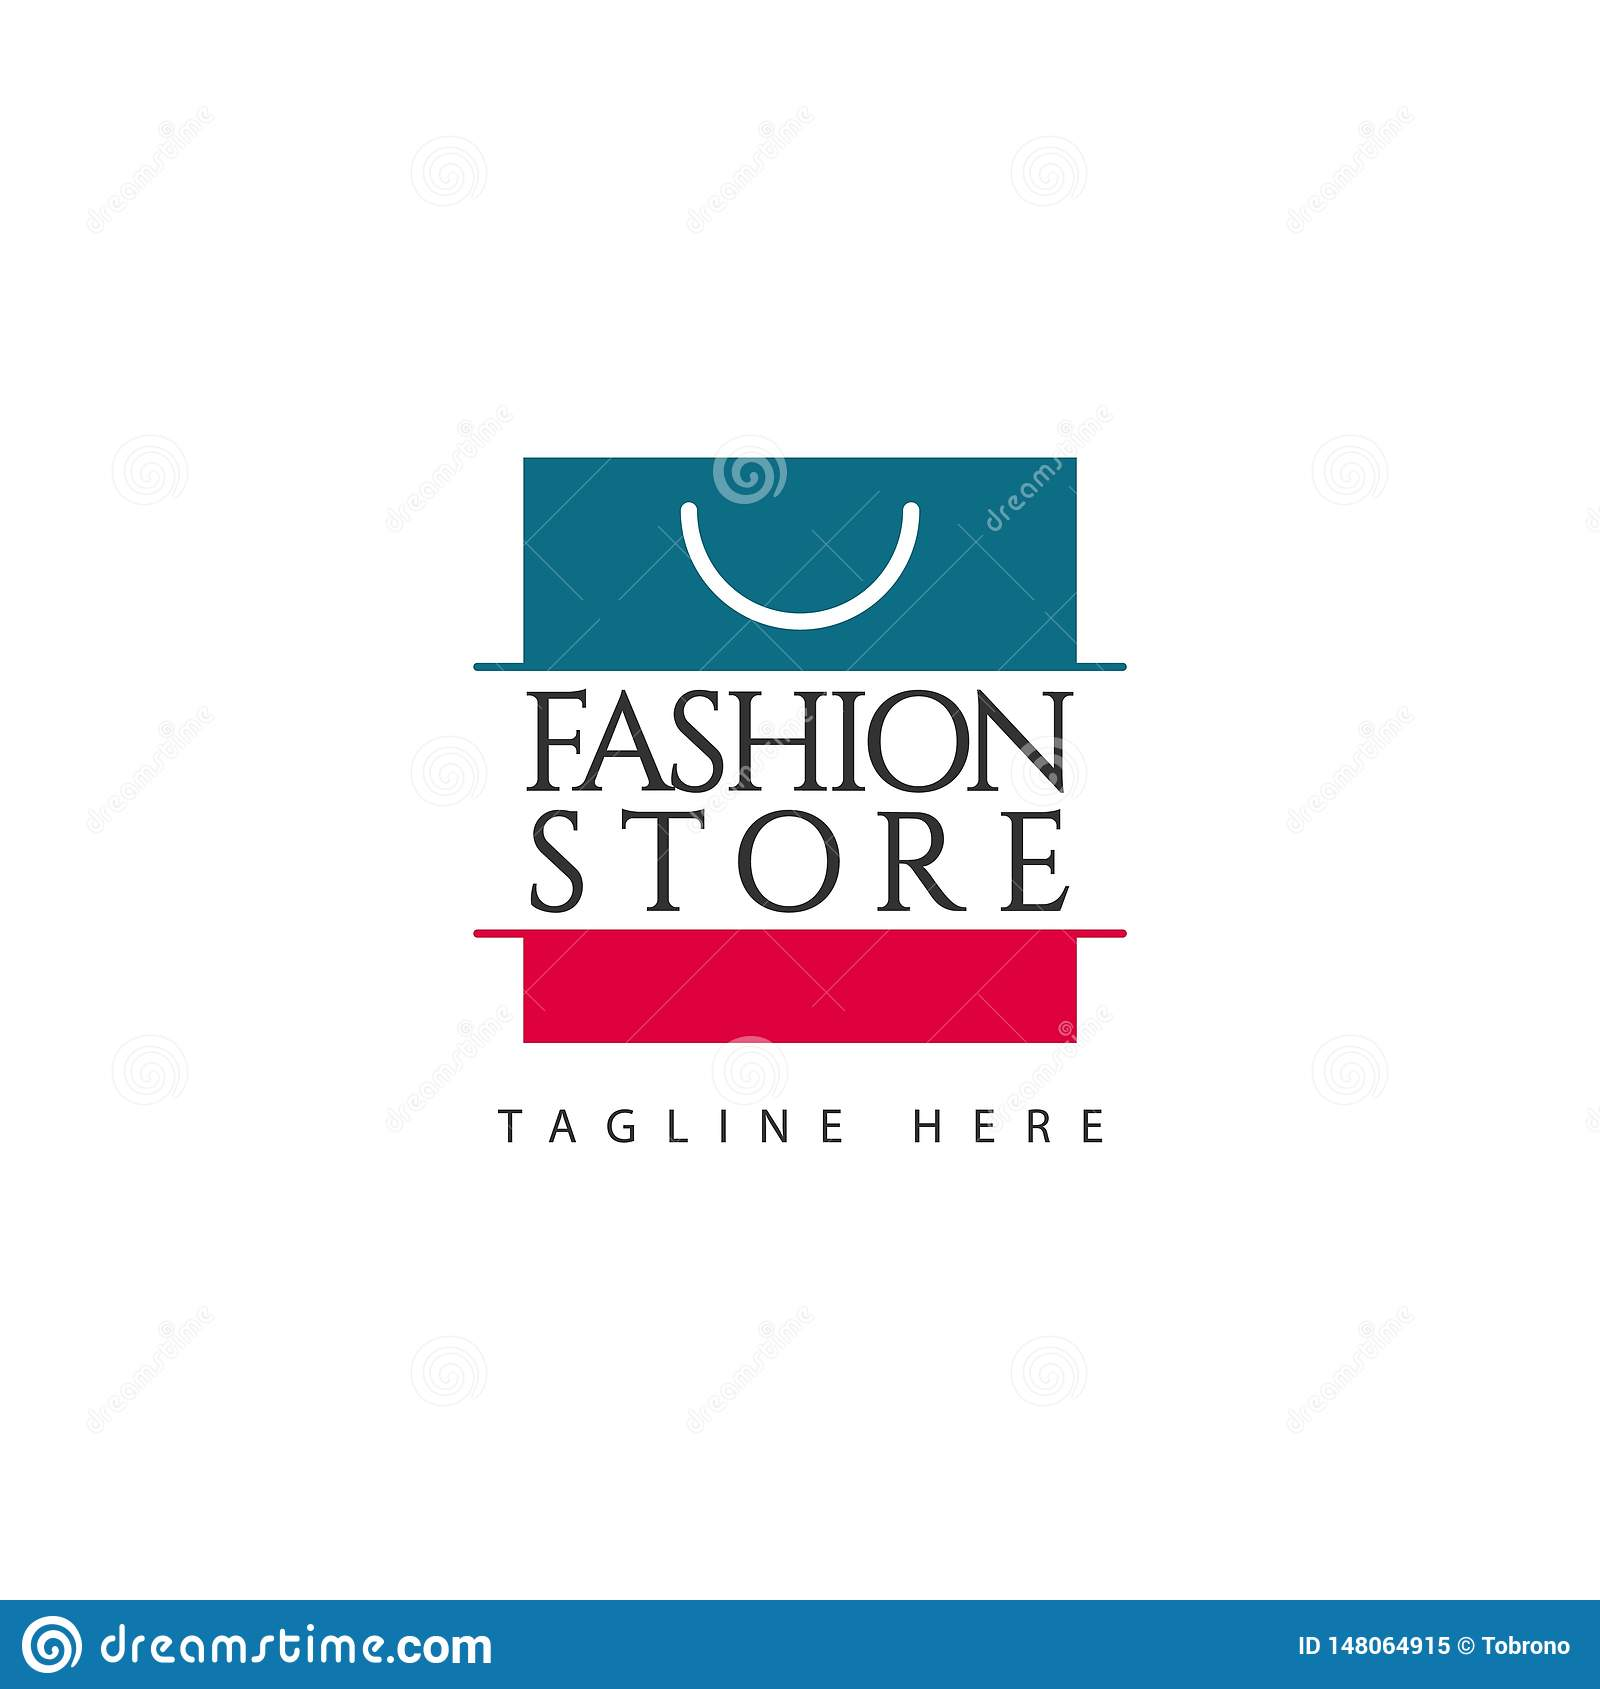 Fashion Store Logo Vector Template Design Illustration Stock Vector Illustration Of Woman Beauty 148064915